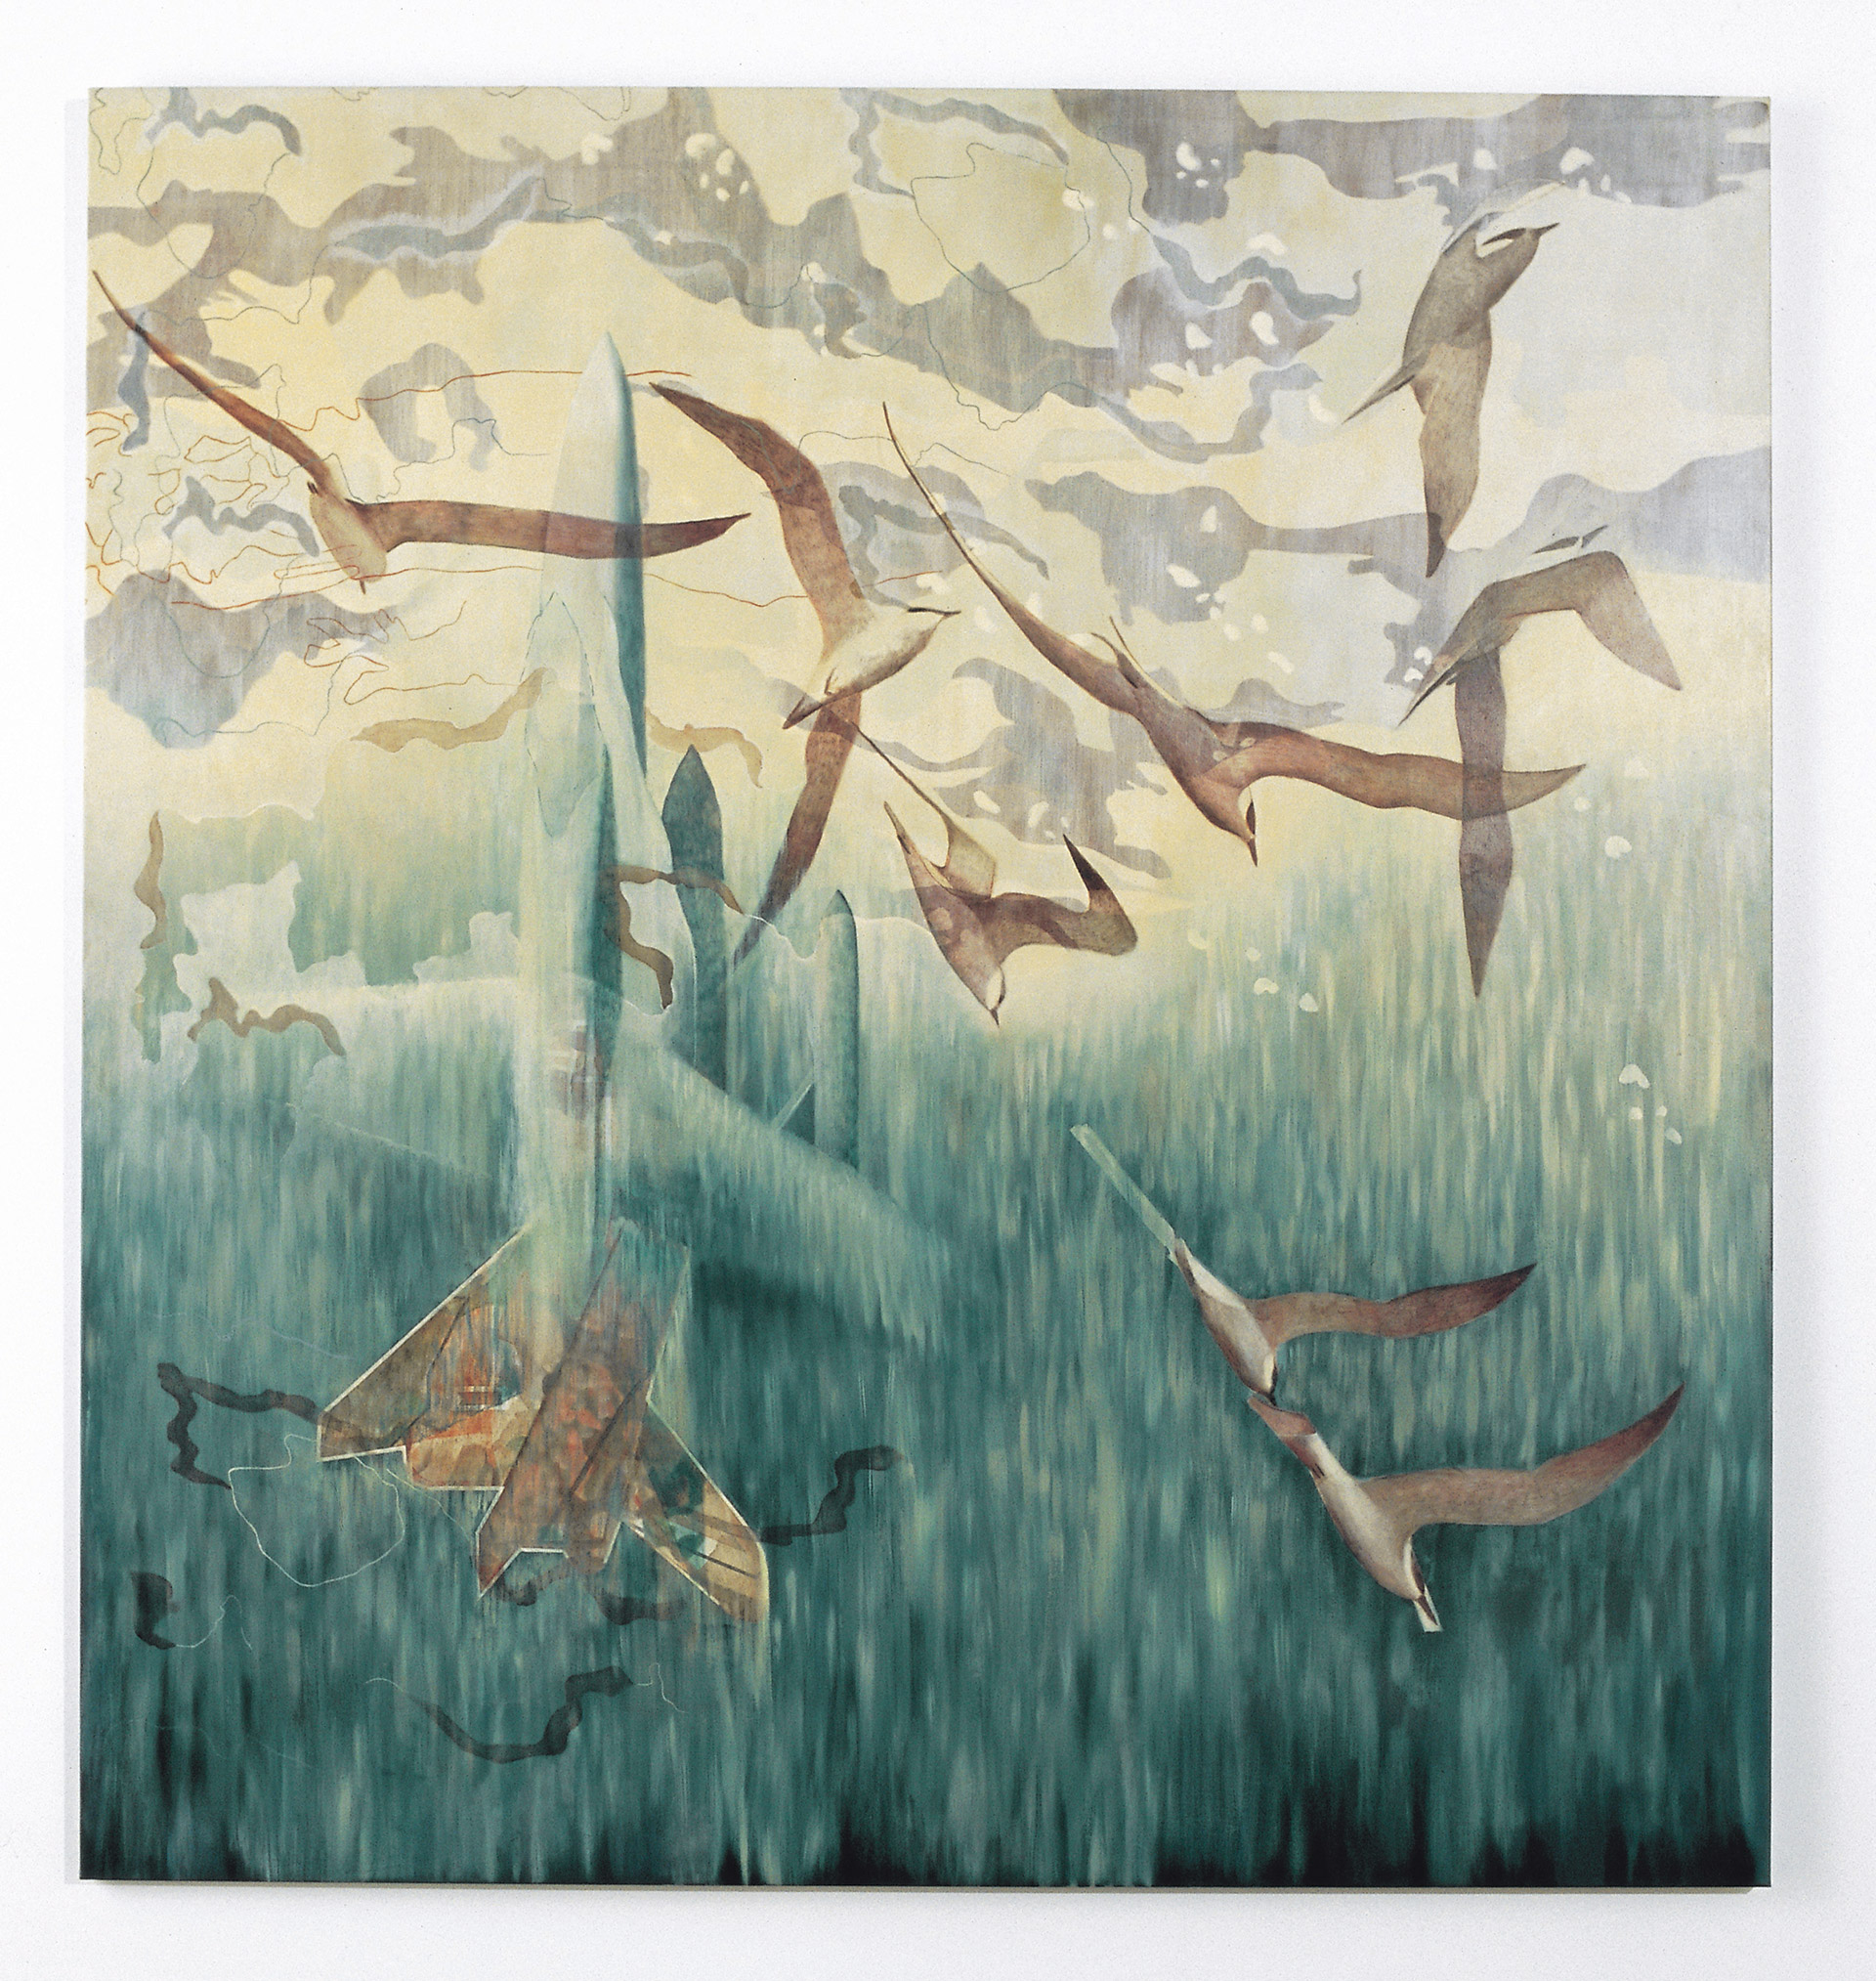 Choreography of war reportage is a painting by Australian artist Madeleine Kelly shown in Sourris QAGOMA and Primavera 2005 MCA